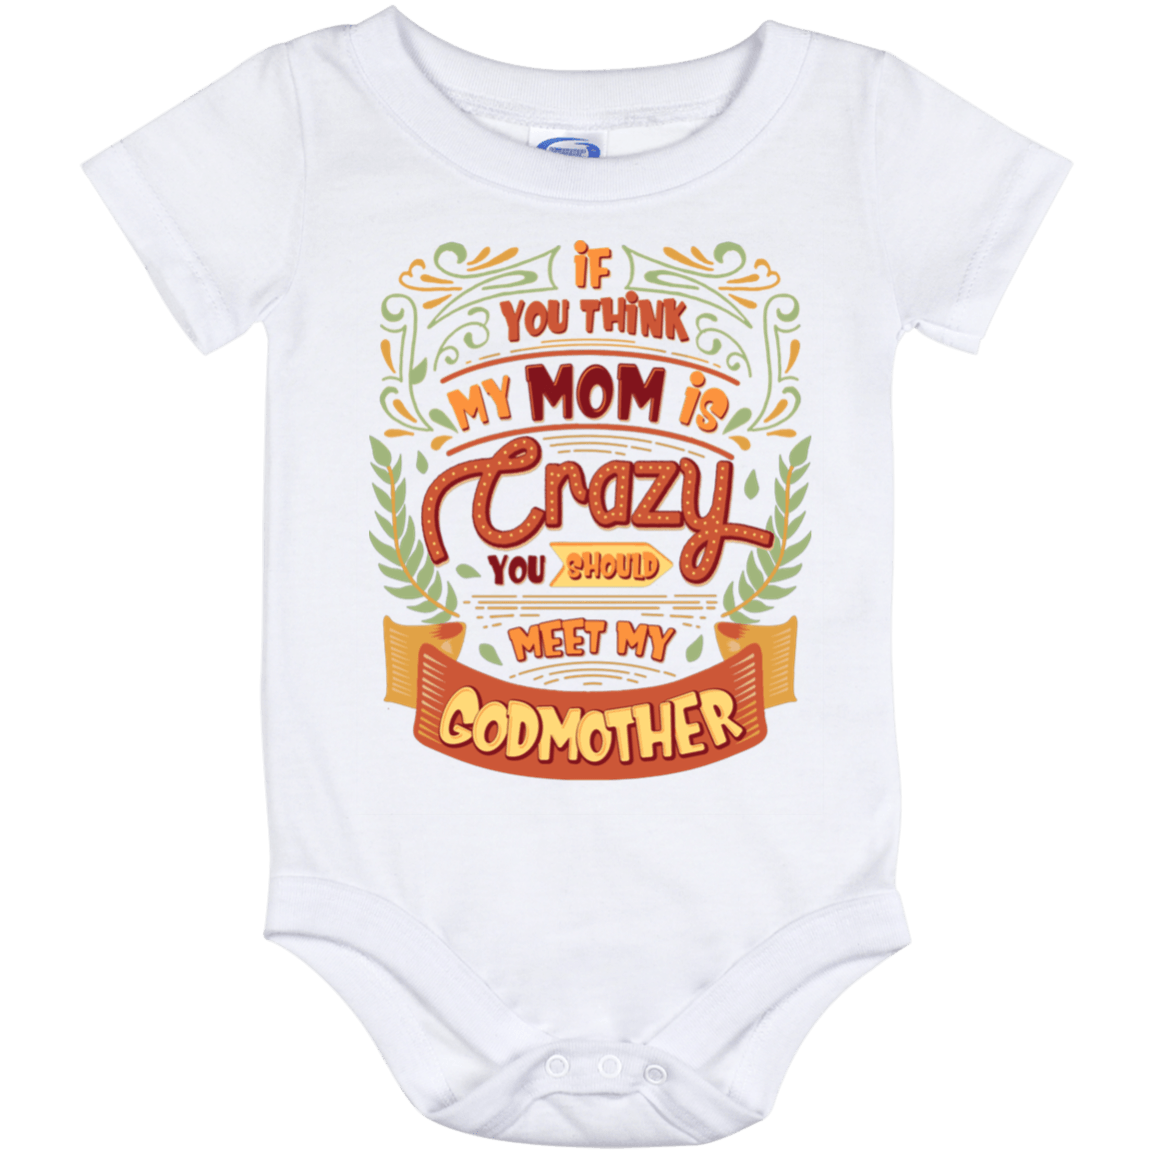 Toddler//Kids Raglan T-Shirt Im Not Crazy My Godmother Had Me Tested